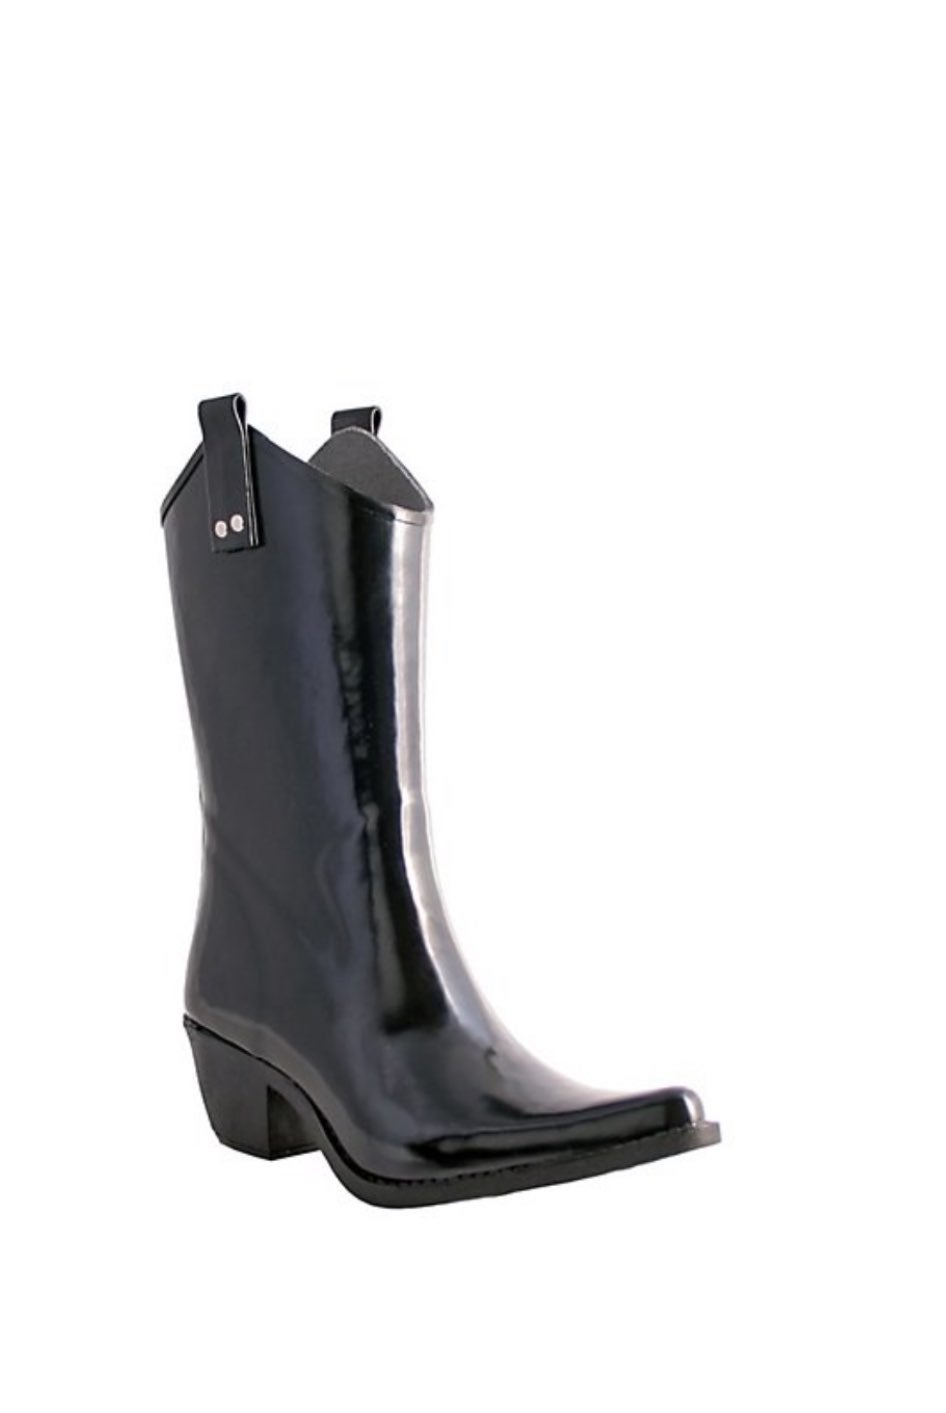 Nomad Pull-On  Cowboy Rubber Rain Boots